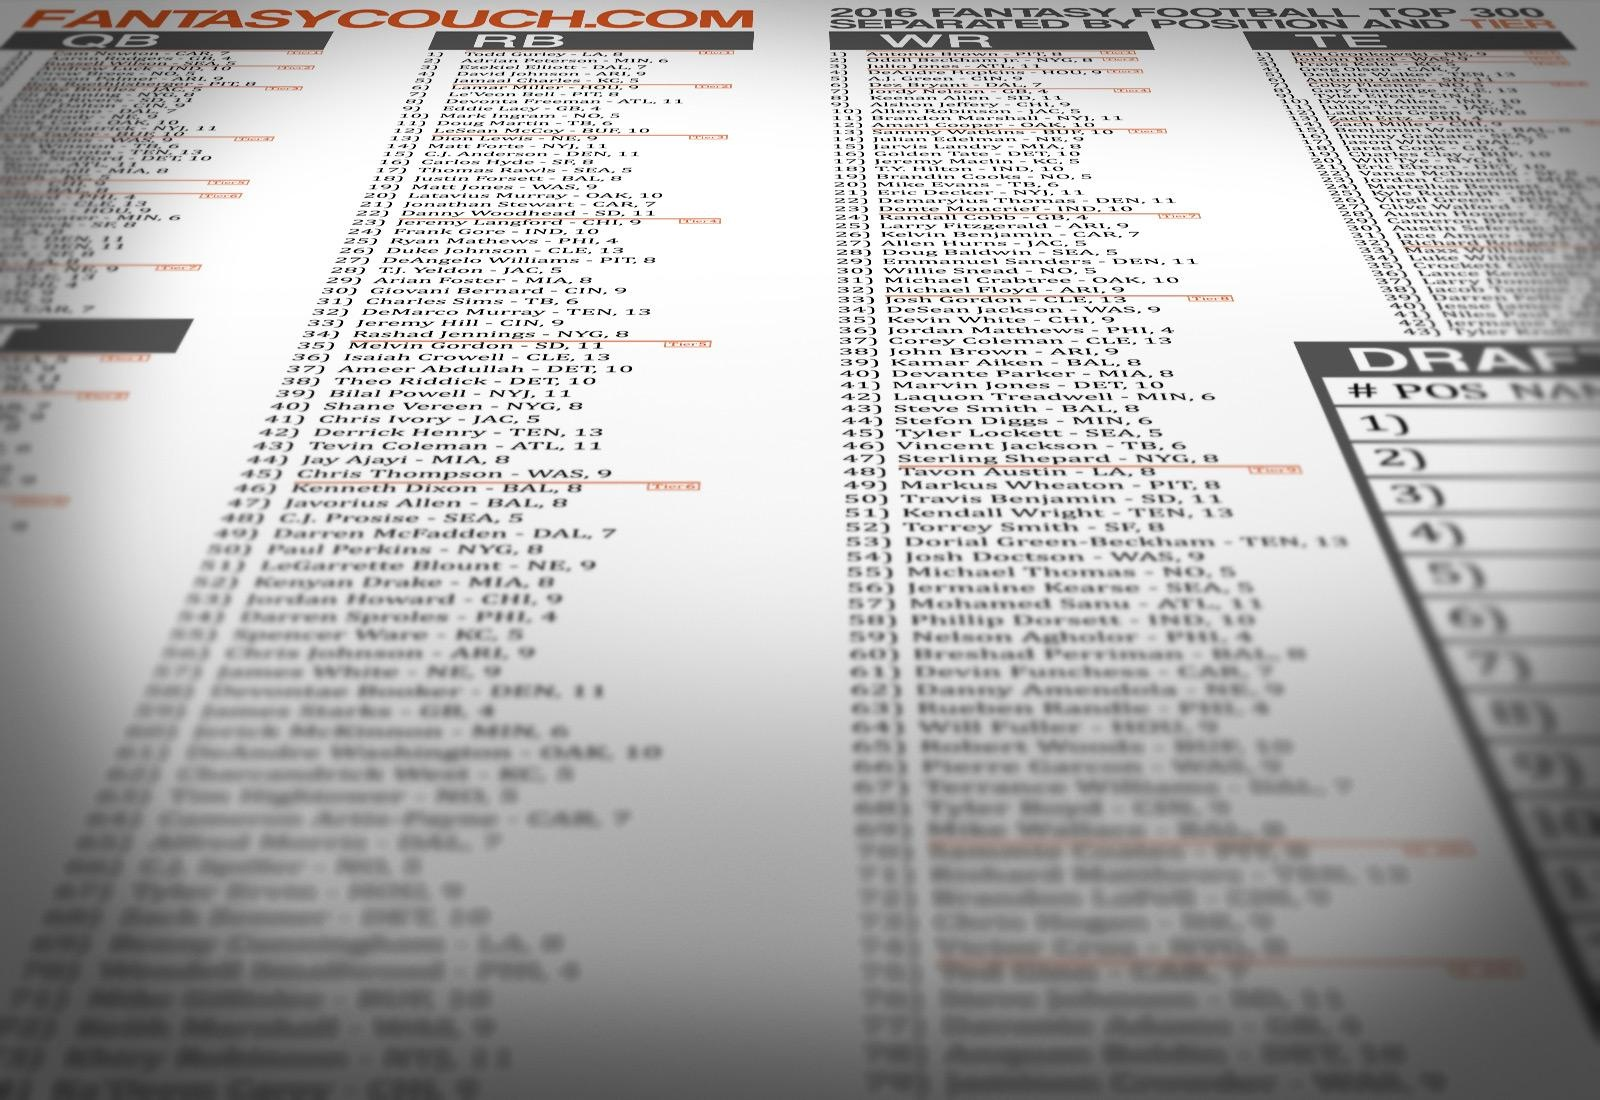 Top 300 List - Fantasy Football 2018 Cheat Sheet - Fantasy Football Cheat Sheets Printable Free